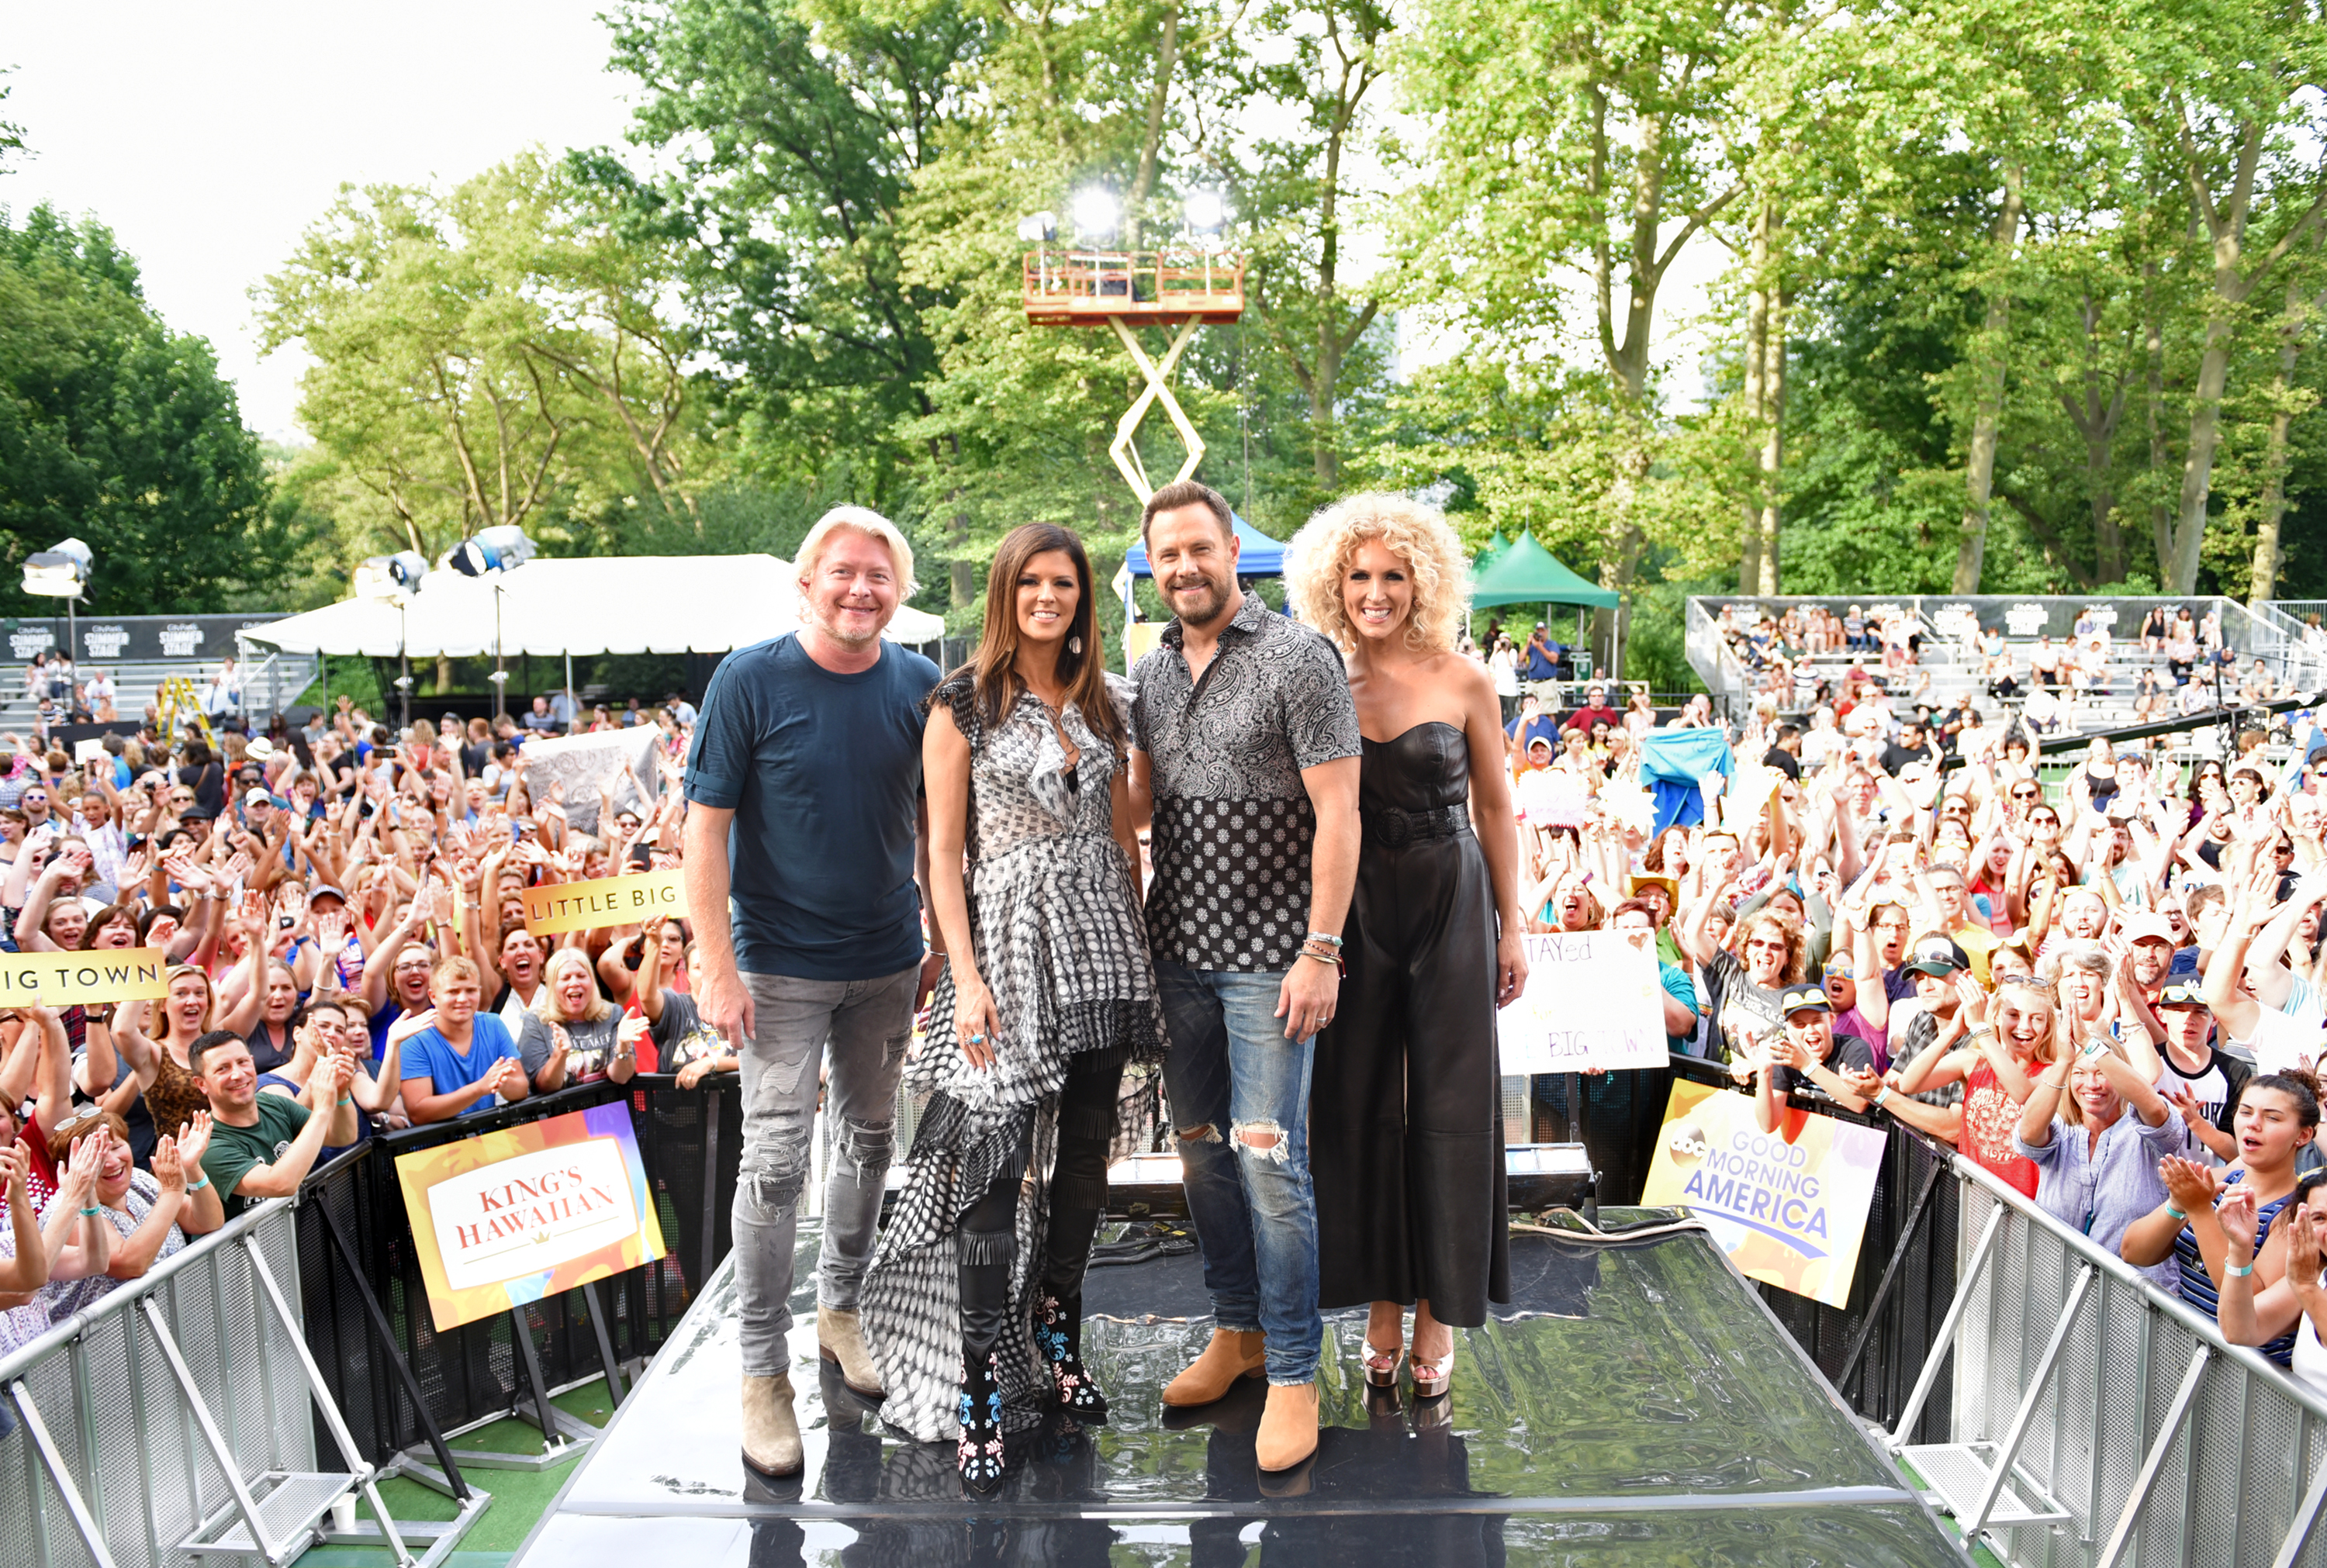 Little Big Town perform at the GMA Summer Concert Series